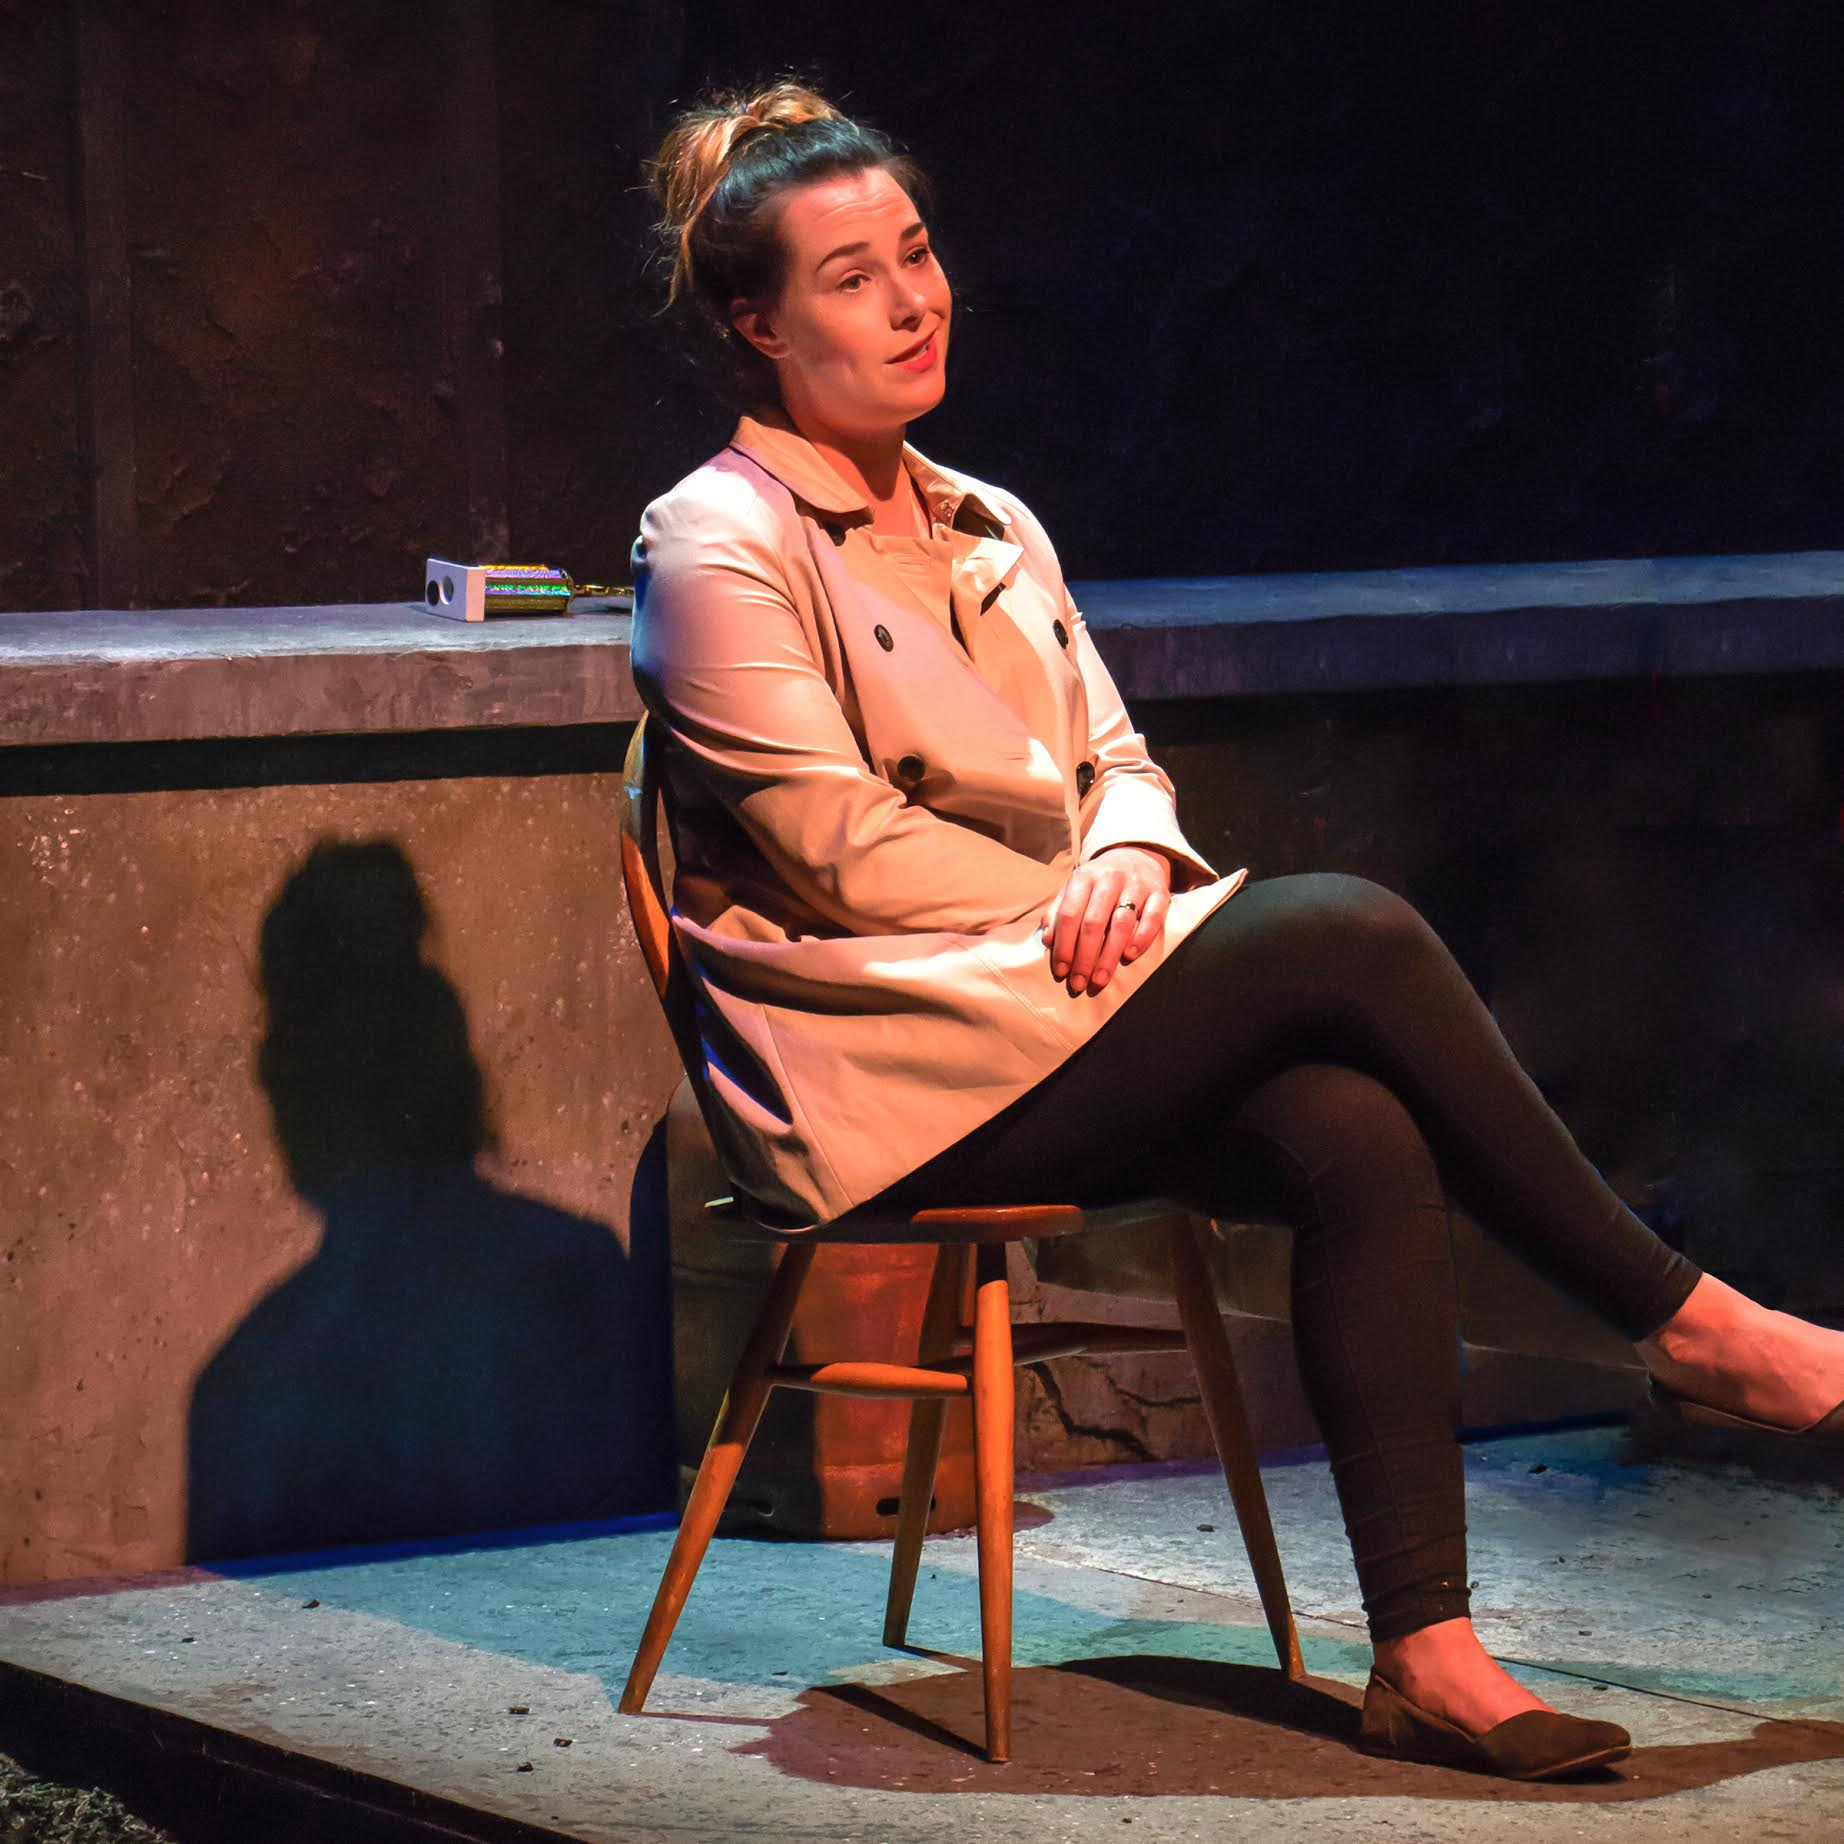 BWW Review: Decadent Distills An Explosive PUMPGIRL